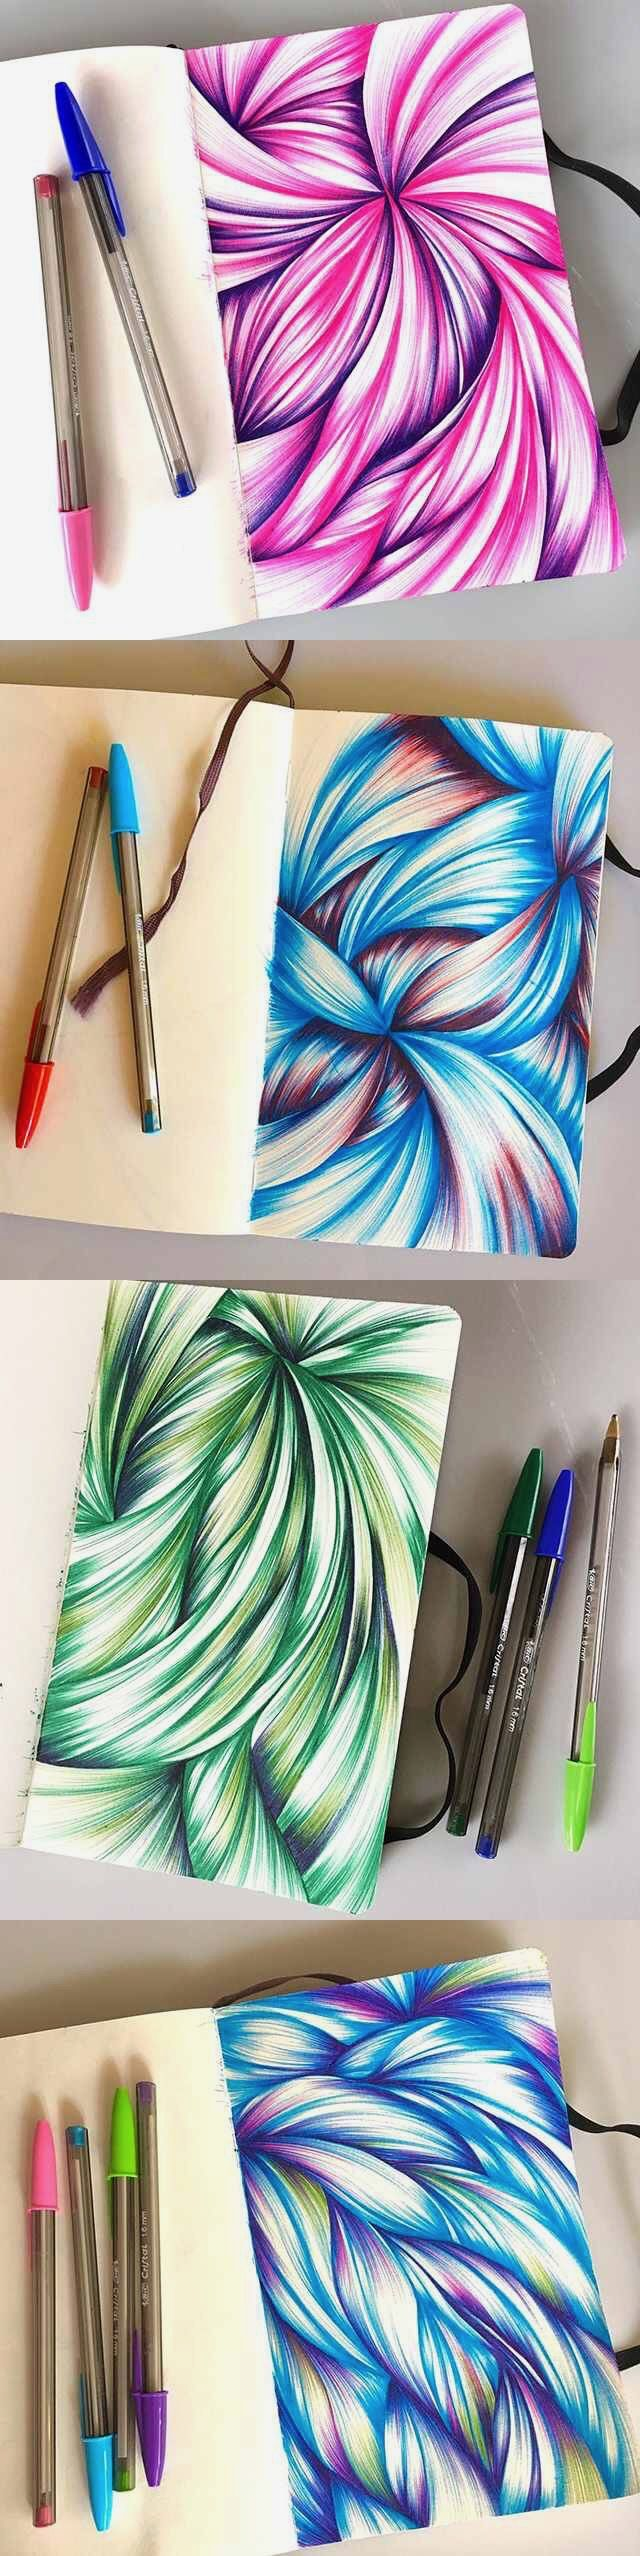 Pin by joana on arte pinterest craft drawings and doodles